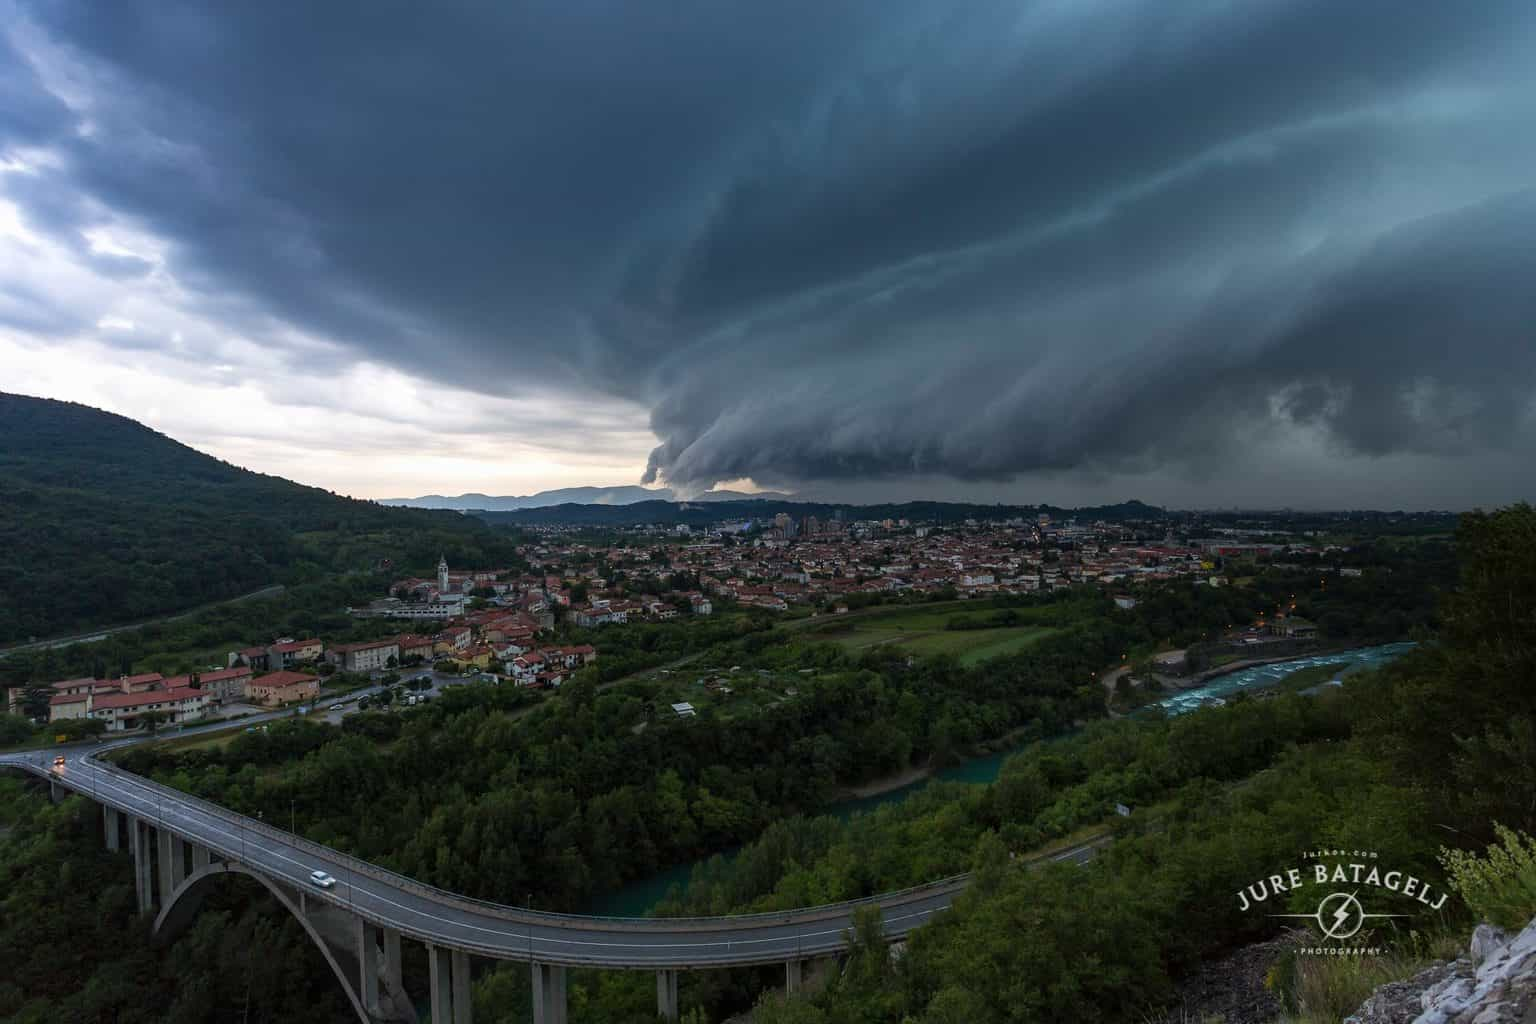 Nova Gorica with Solkan (Slovenia) and Gorizia (Italy) - Europe - 20.05.2015 It was predicted, but not that big, so I saw it through my window and in 5min of rush to this mountain road I made this catch of first great Shell Cloud captured on my location that became very popular in my country. Best wishes to all for new season of stormchasing..